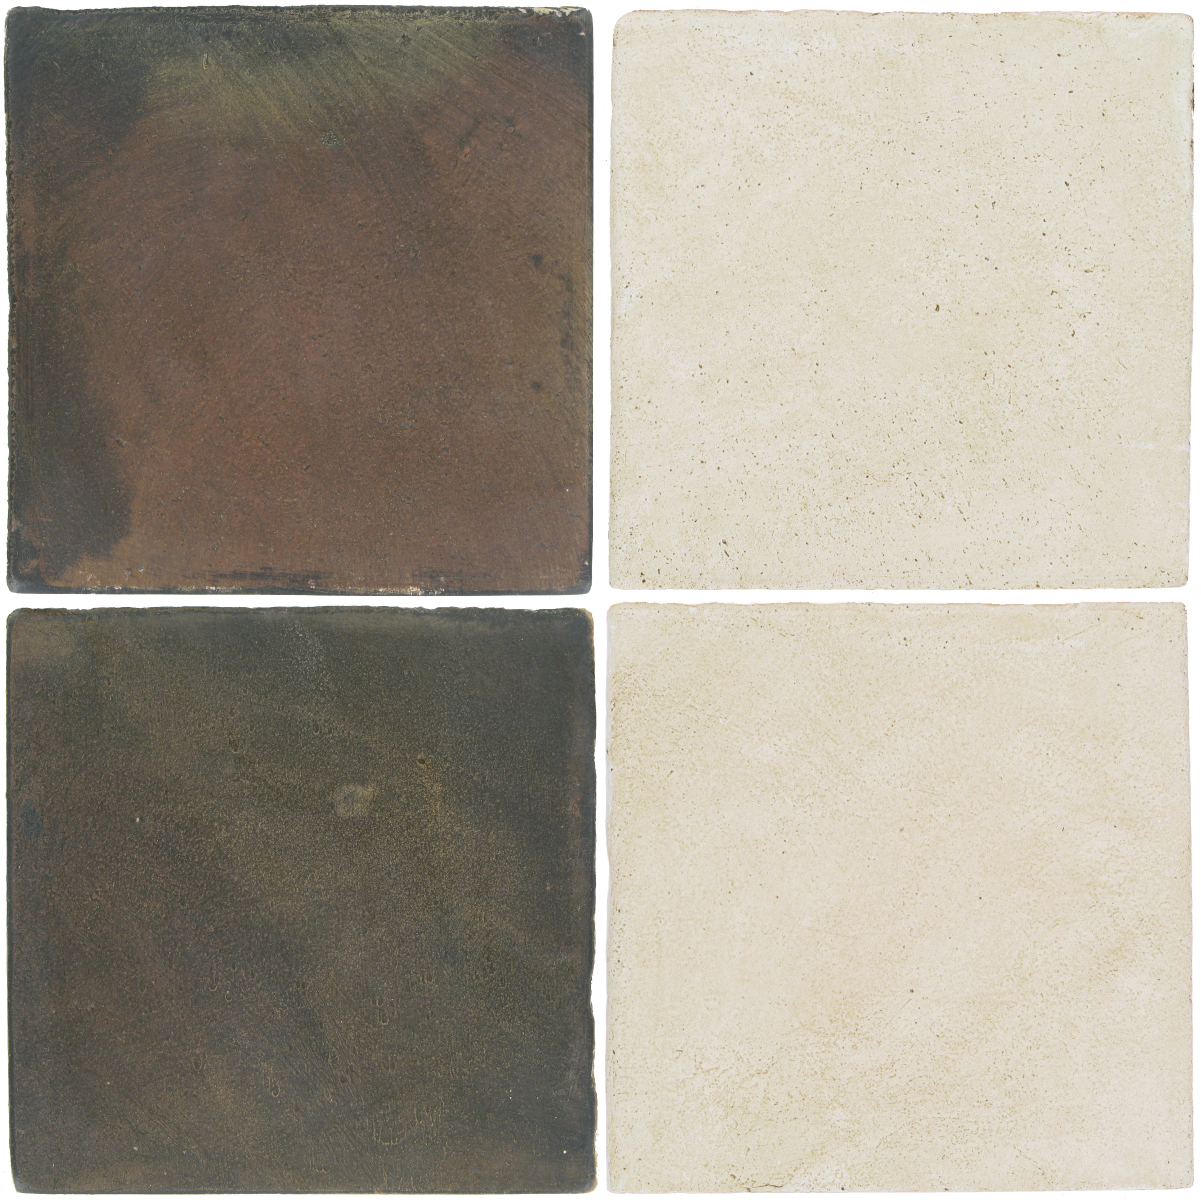 Pedralbes Antique Terracotta  2 Color Combinations  OHS-PSTG Terra Grey + OHS-PGAW Antique White